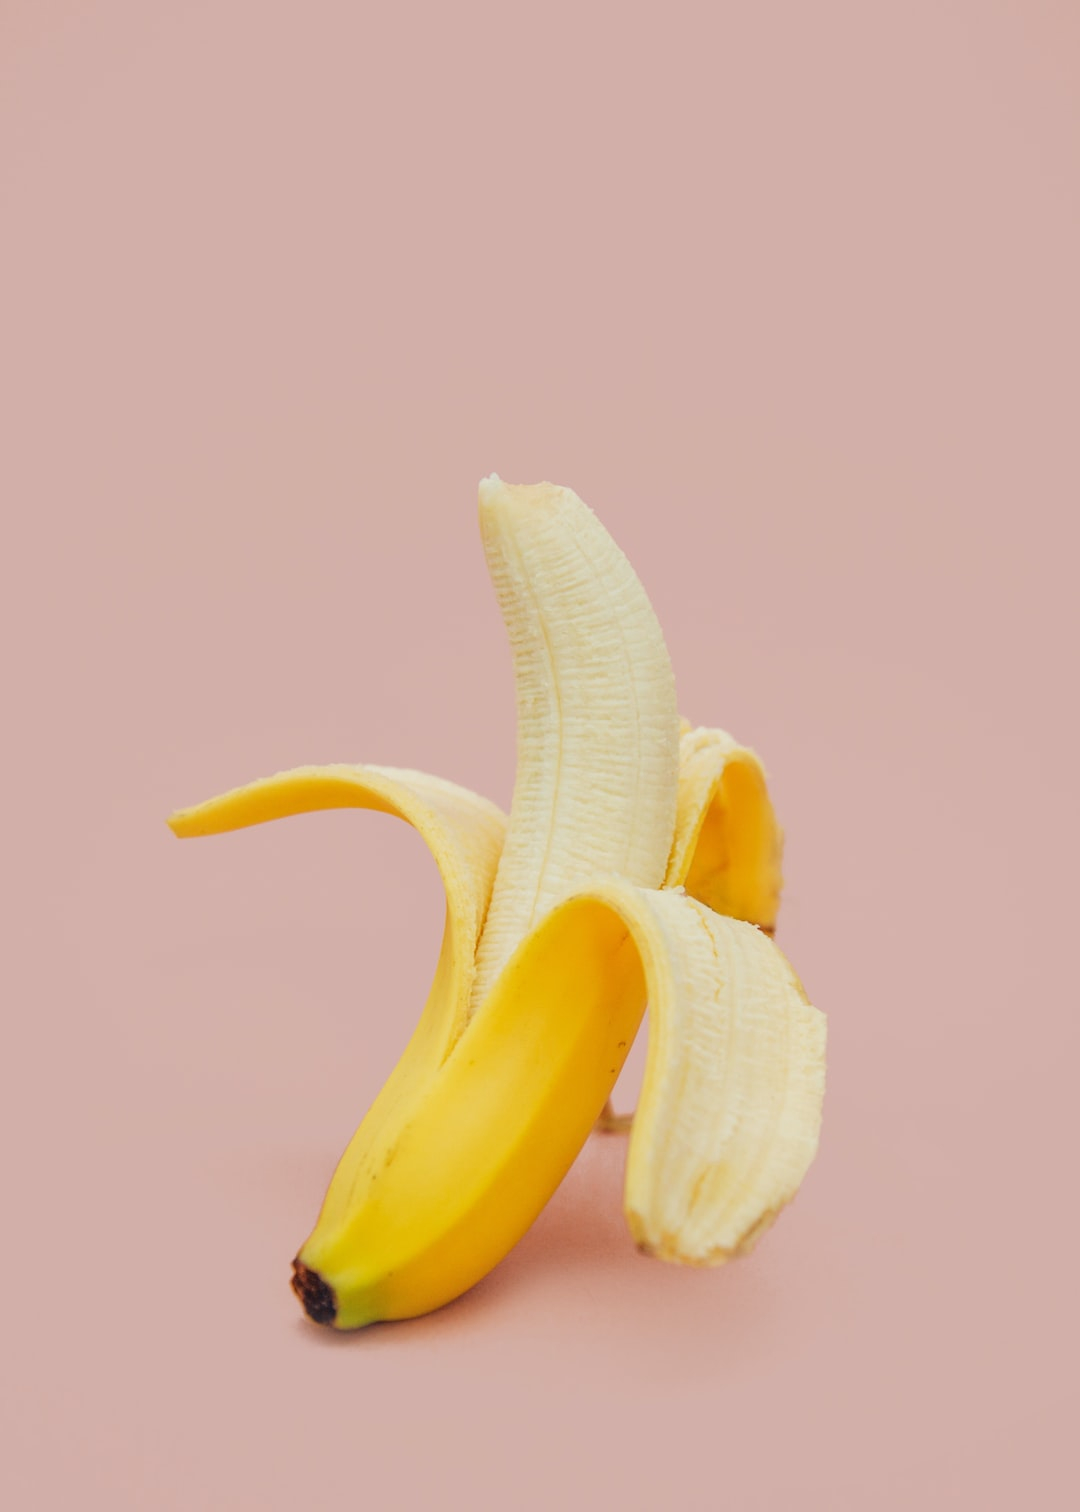 27+ Banana Pictures | Download Free Images on Unsplash